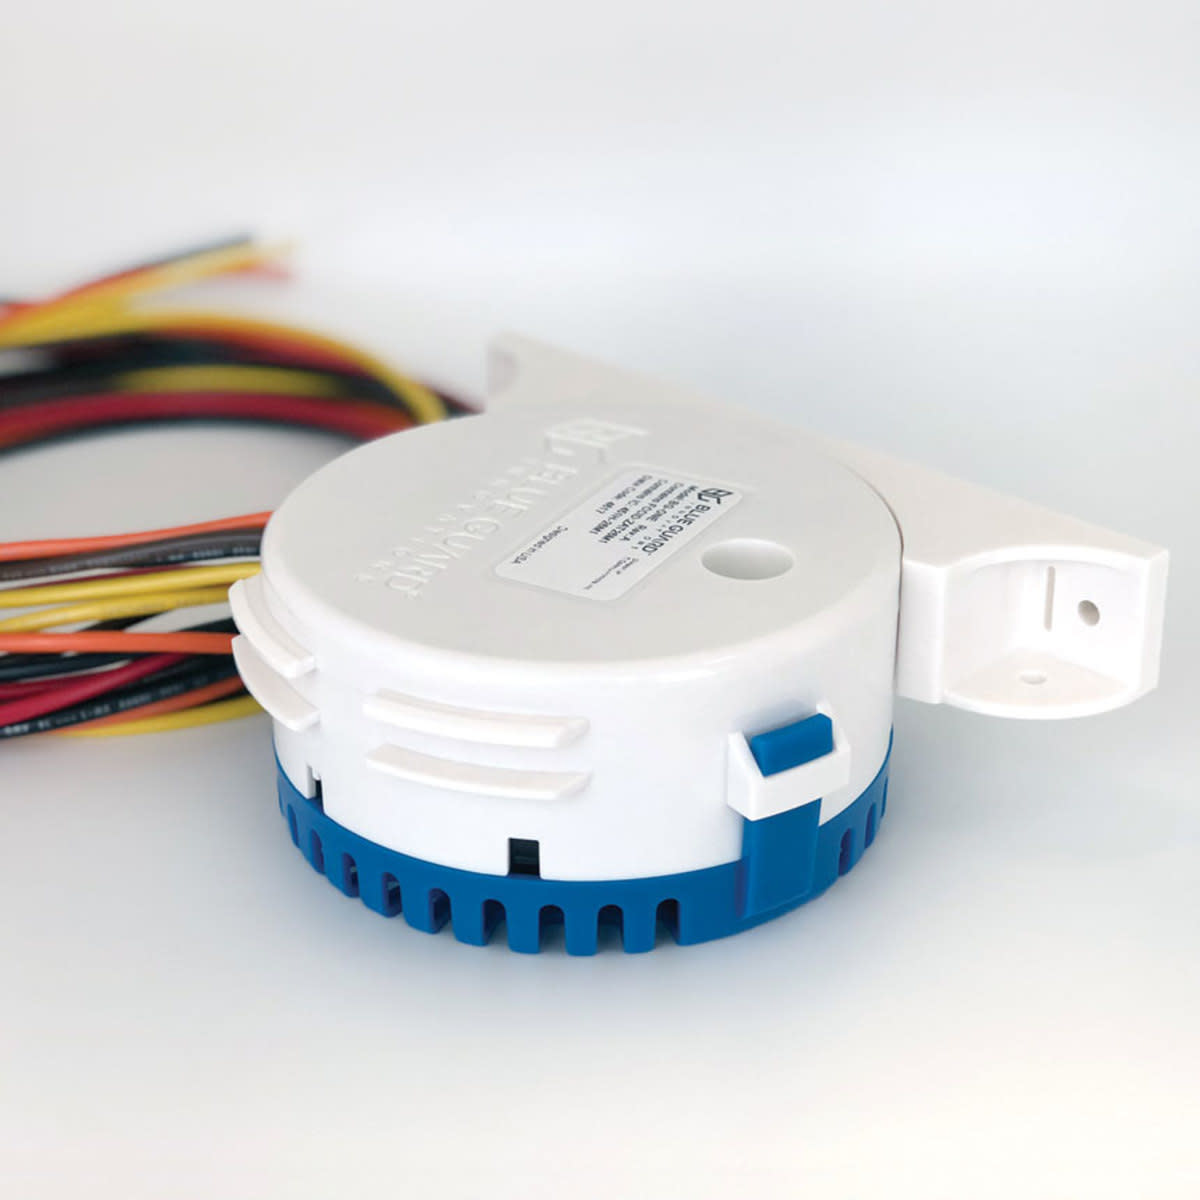 The Blue Guard BG-One Oil and Fuel Detector with Smart Bilge Pump Switch